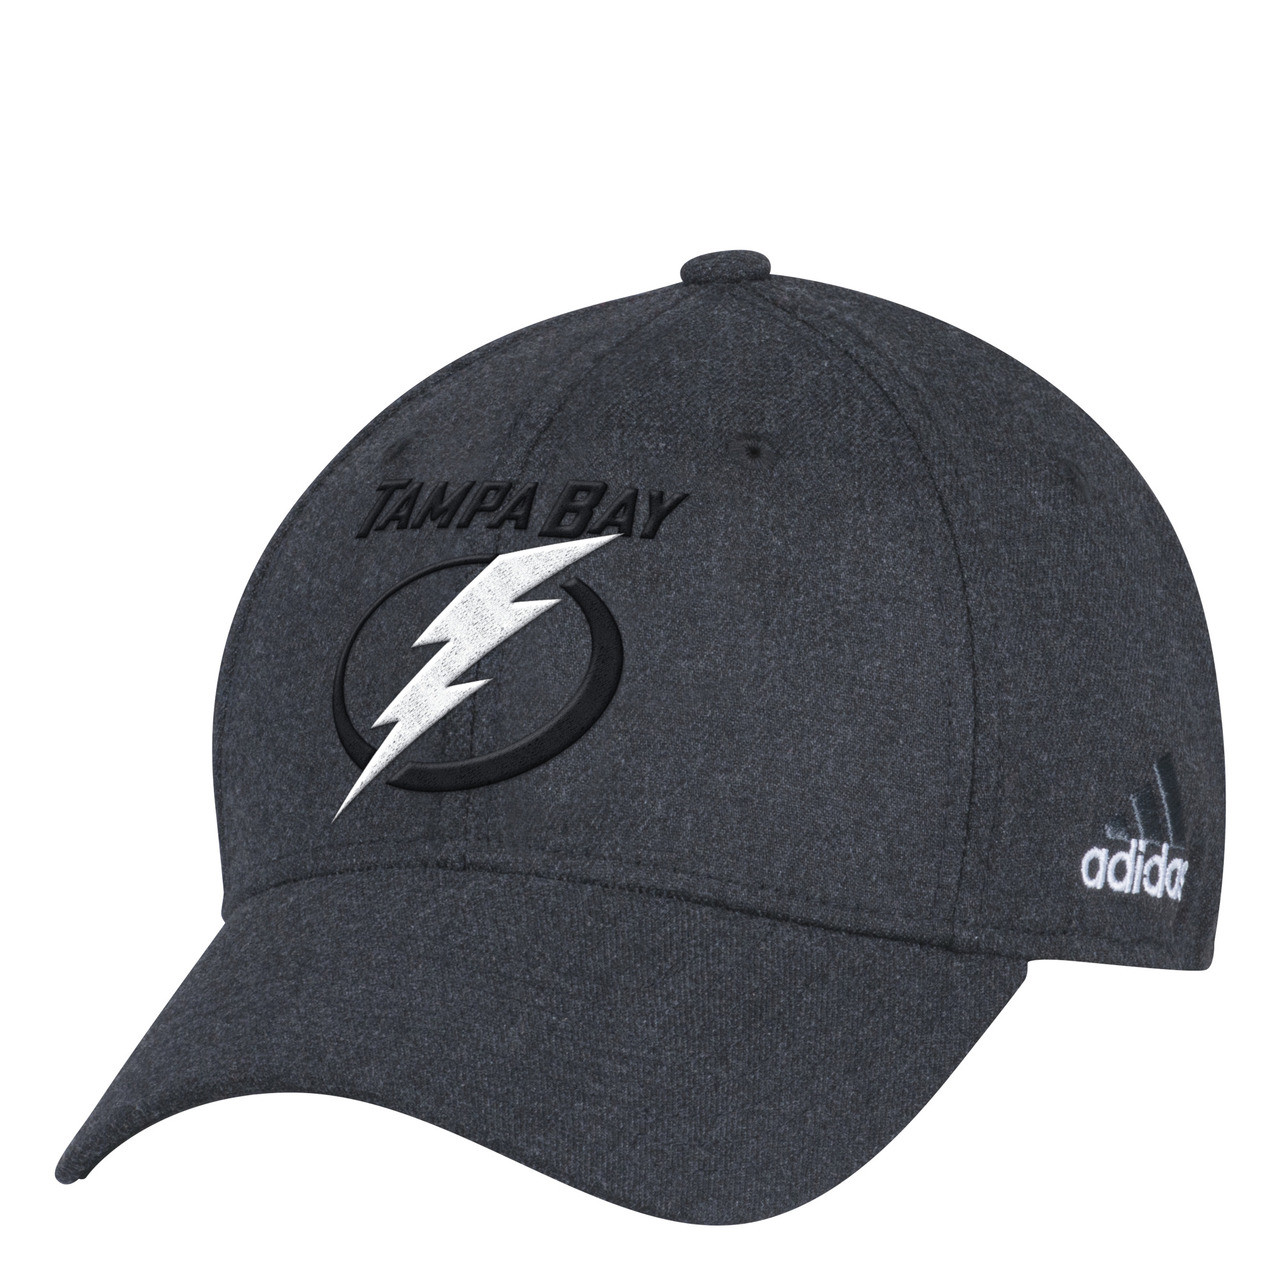 new arrival 0400f 089ed Tampa Bay Lightning adidas Flex Black Hat - Tampa Bay Sports